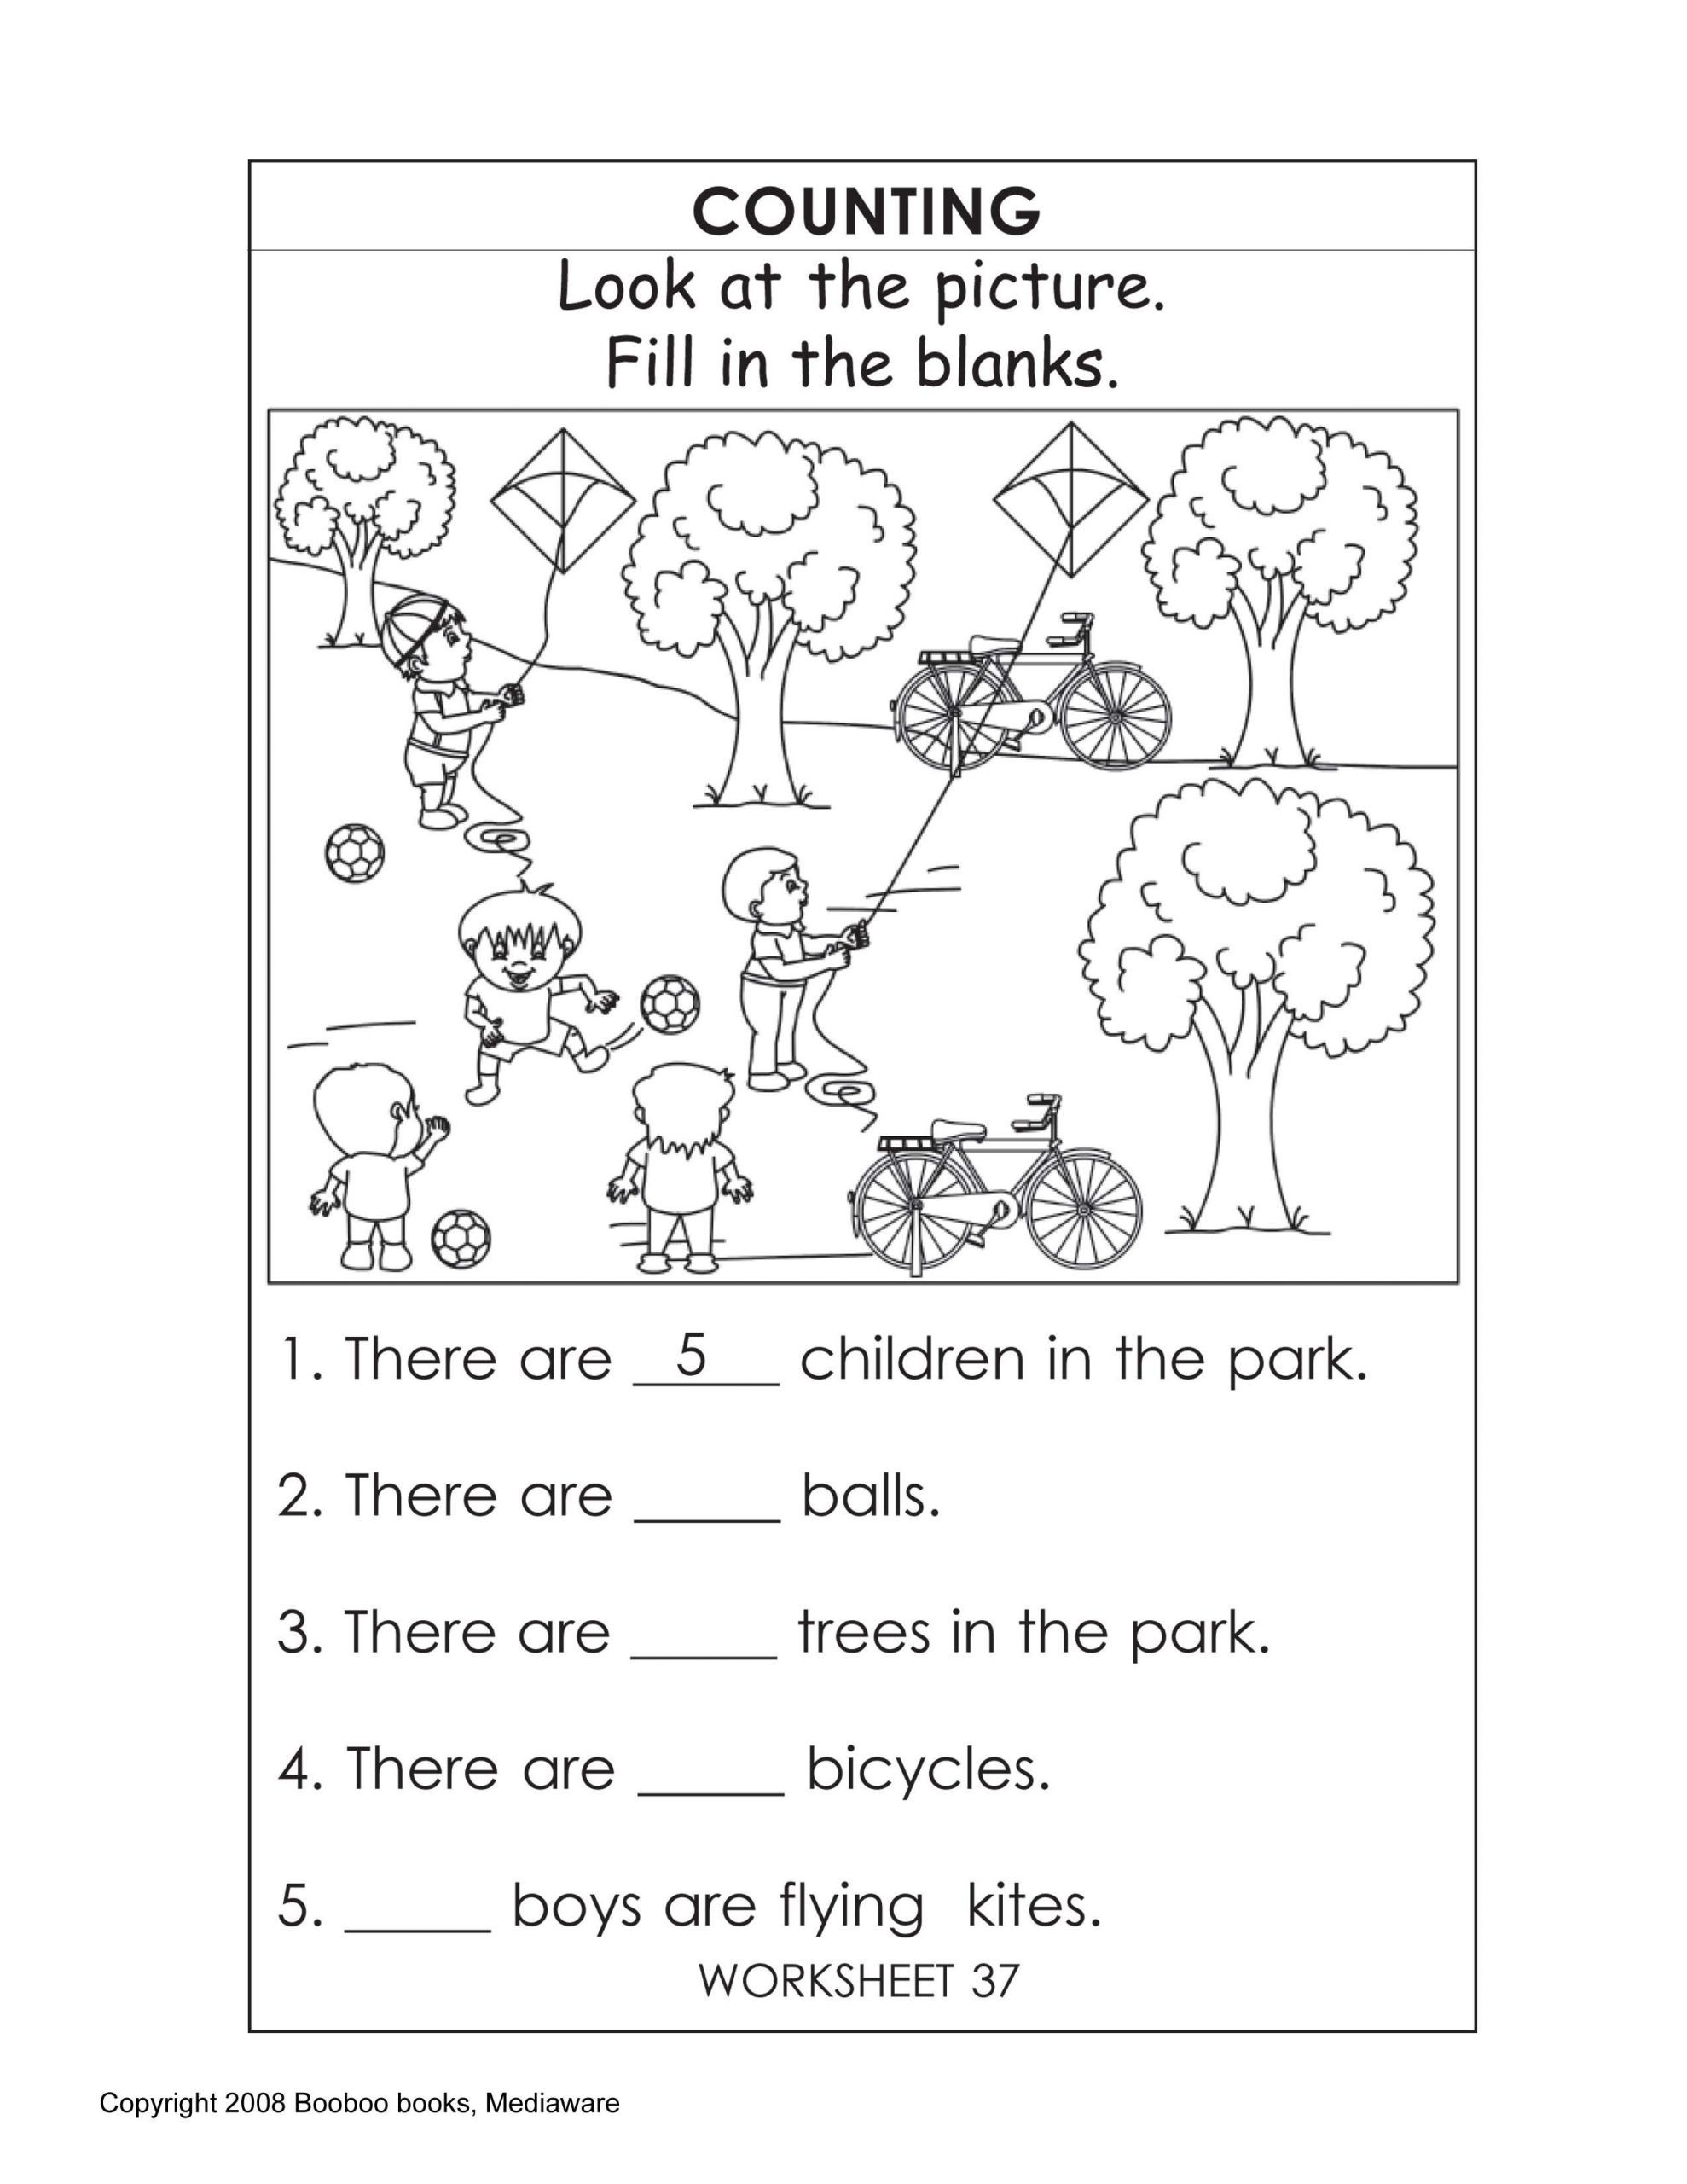 9th Grade Physical Science Worksheets Hiddenfashionhistory Blending Worksheets for Kindergarten